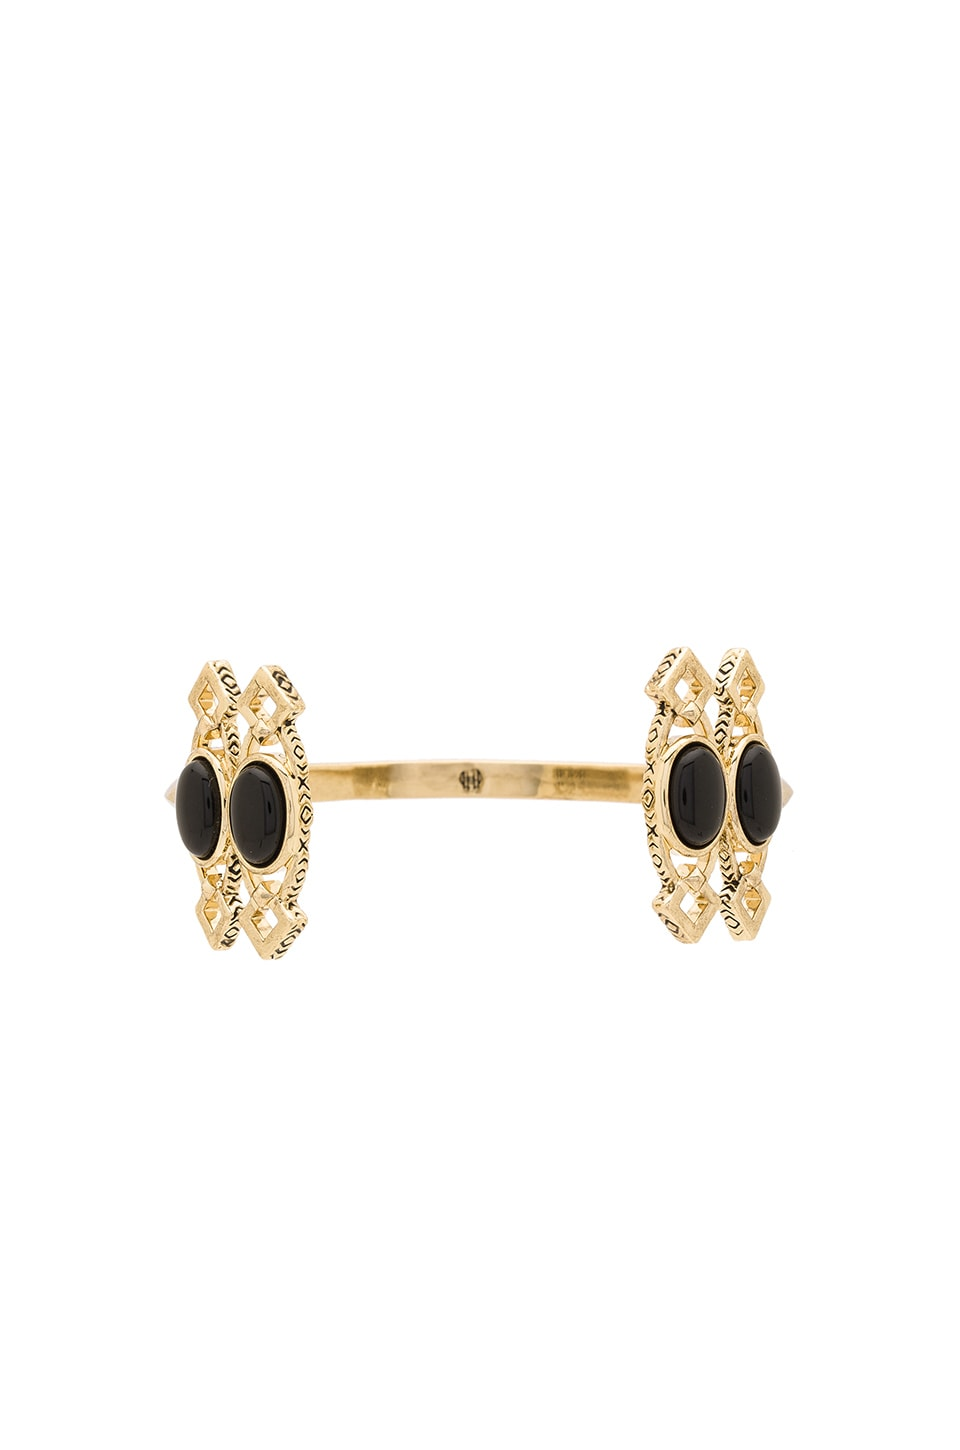 House of Harlow 1960 House of Harlow Lady Of Grace Cuff in Gold & Black